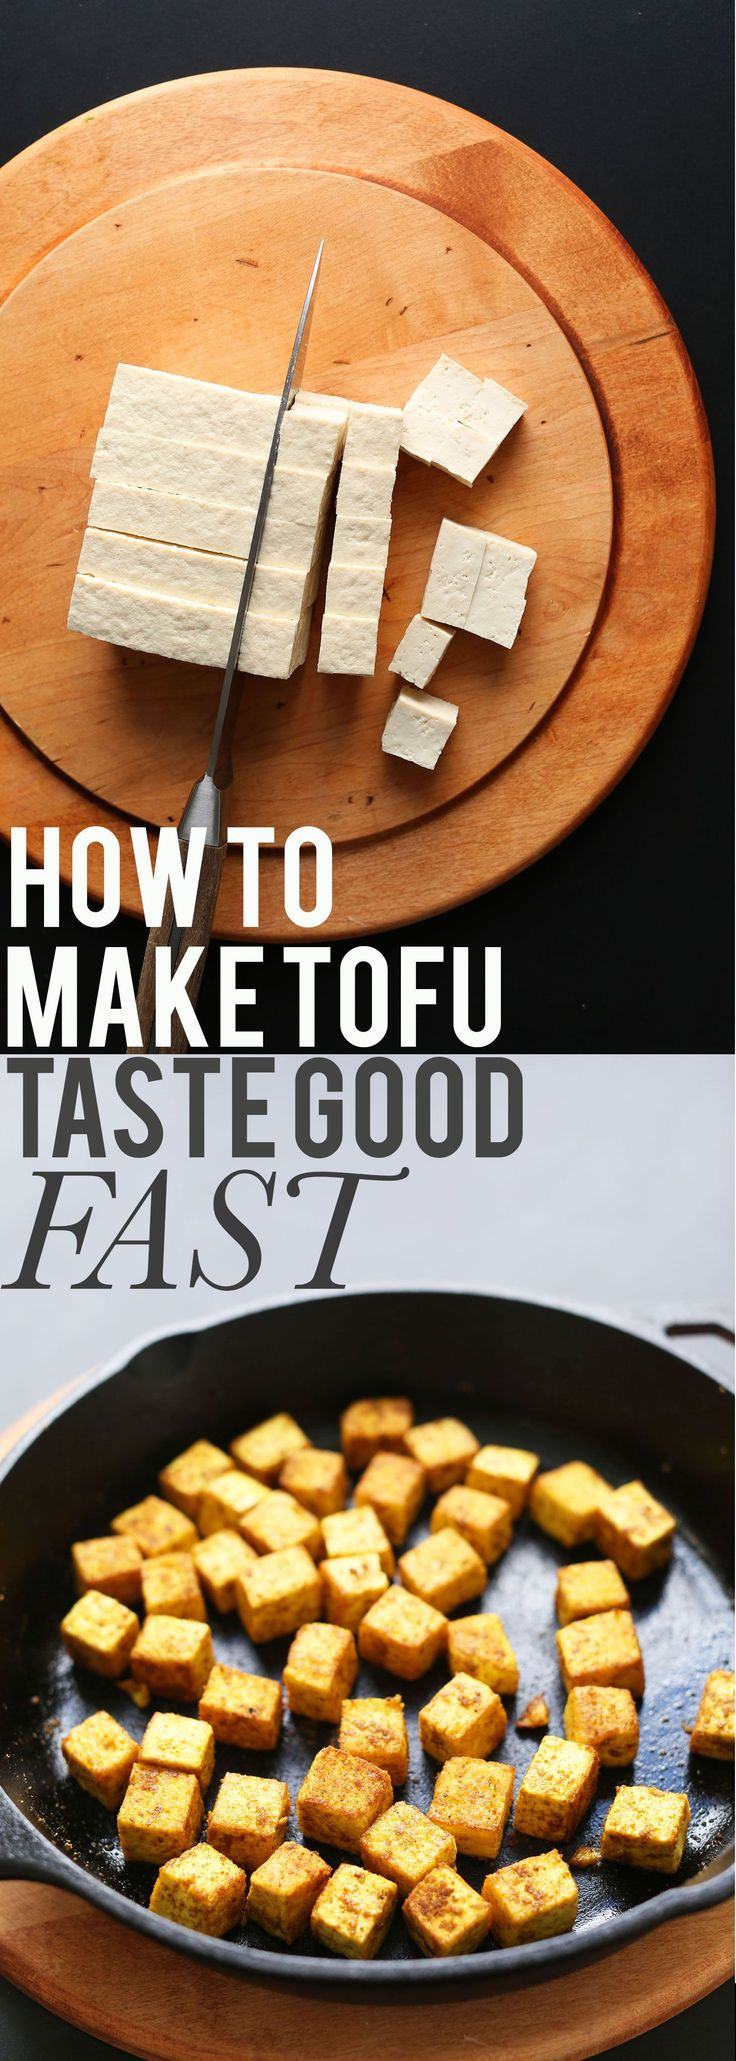 HOW TO Make Tofu Taste Good FAST in 20 minutes! A special method crisps it up WITHOUT FRYING!